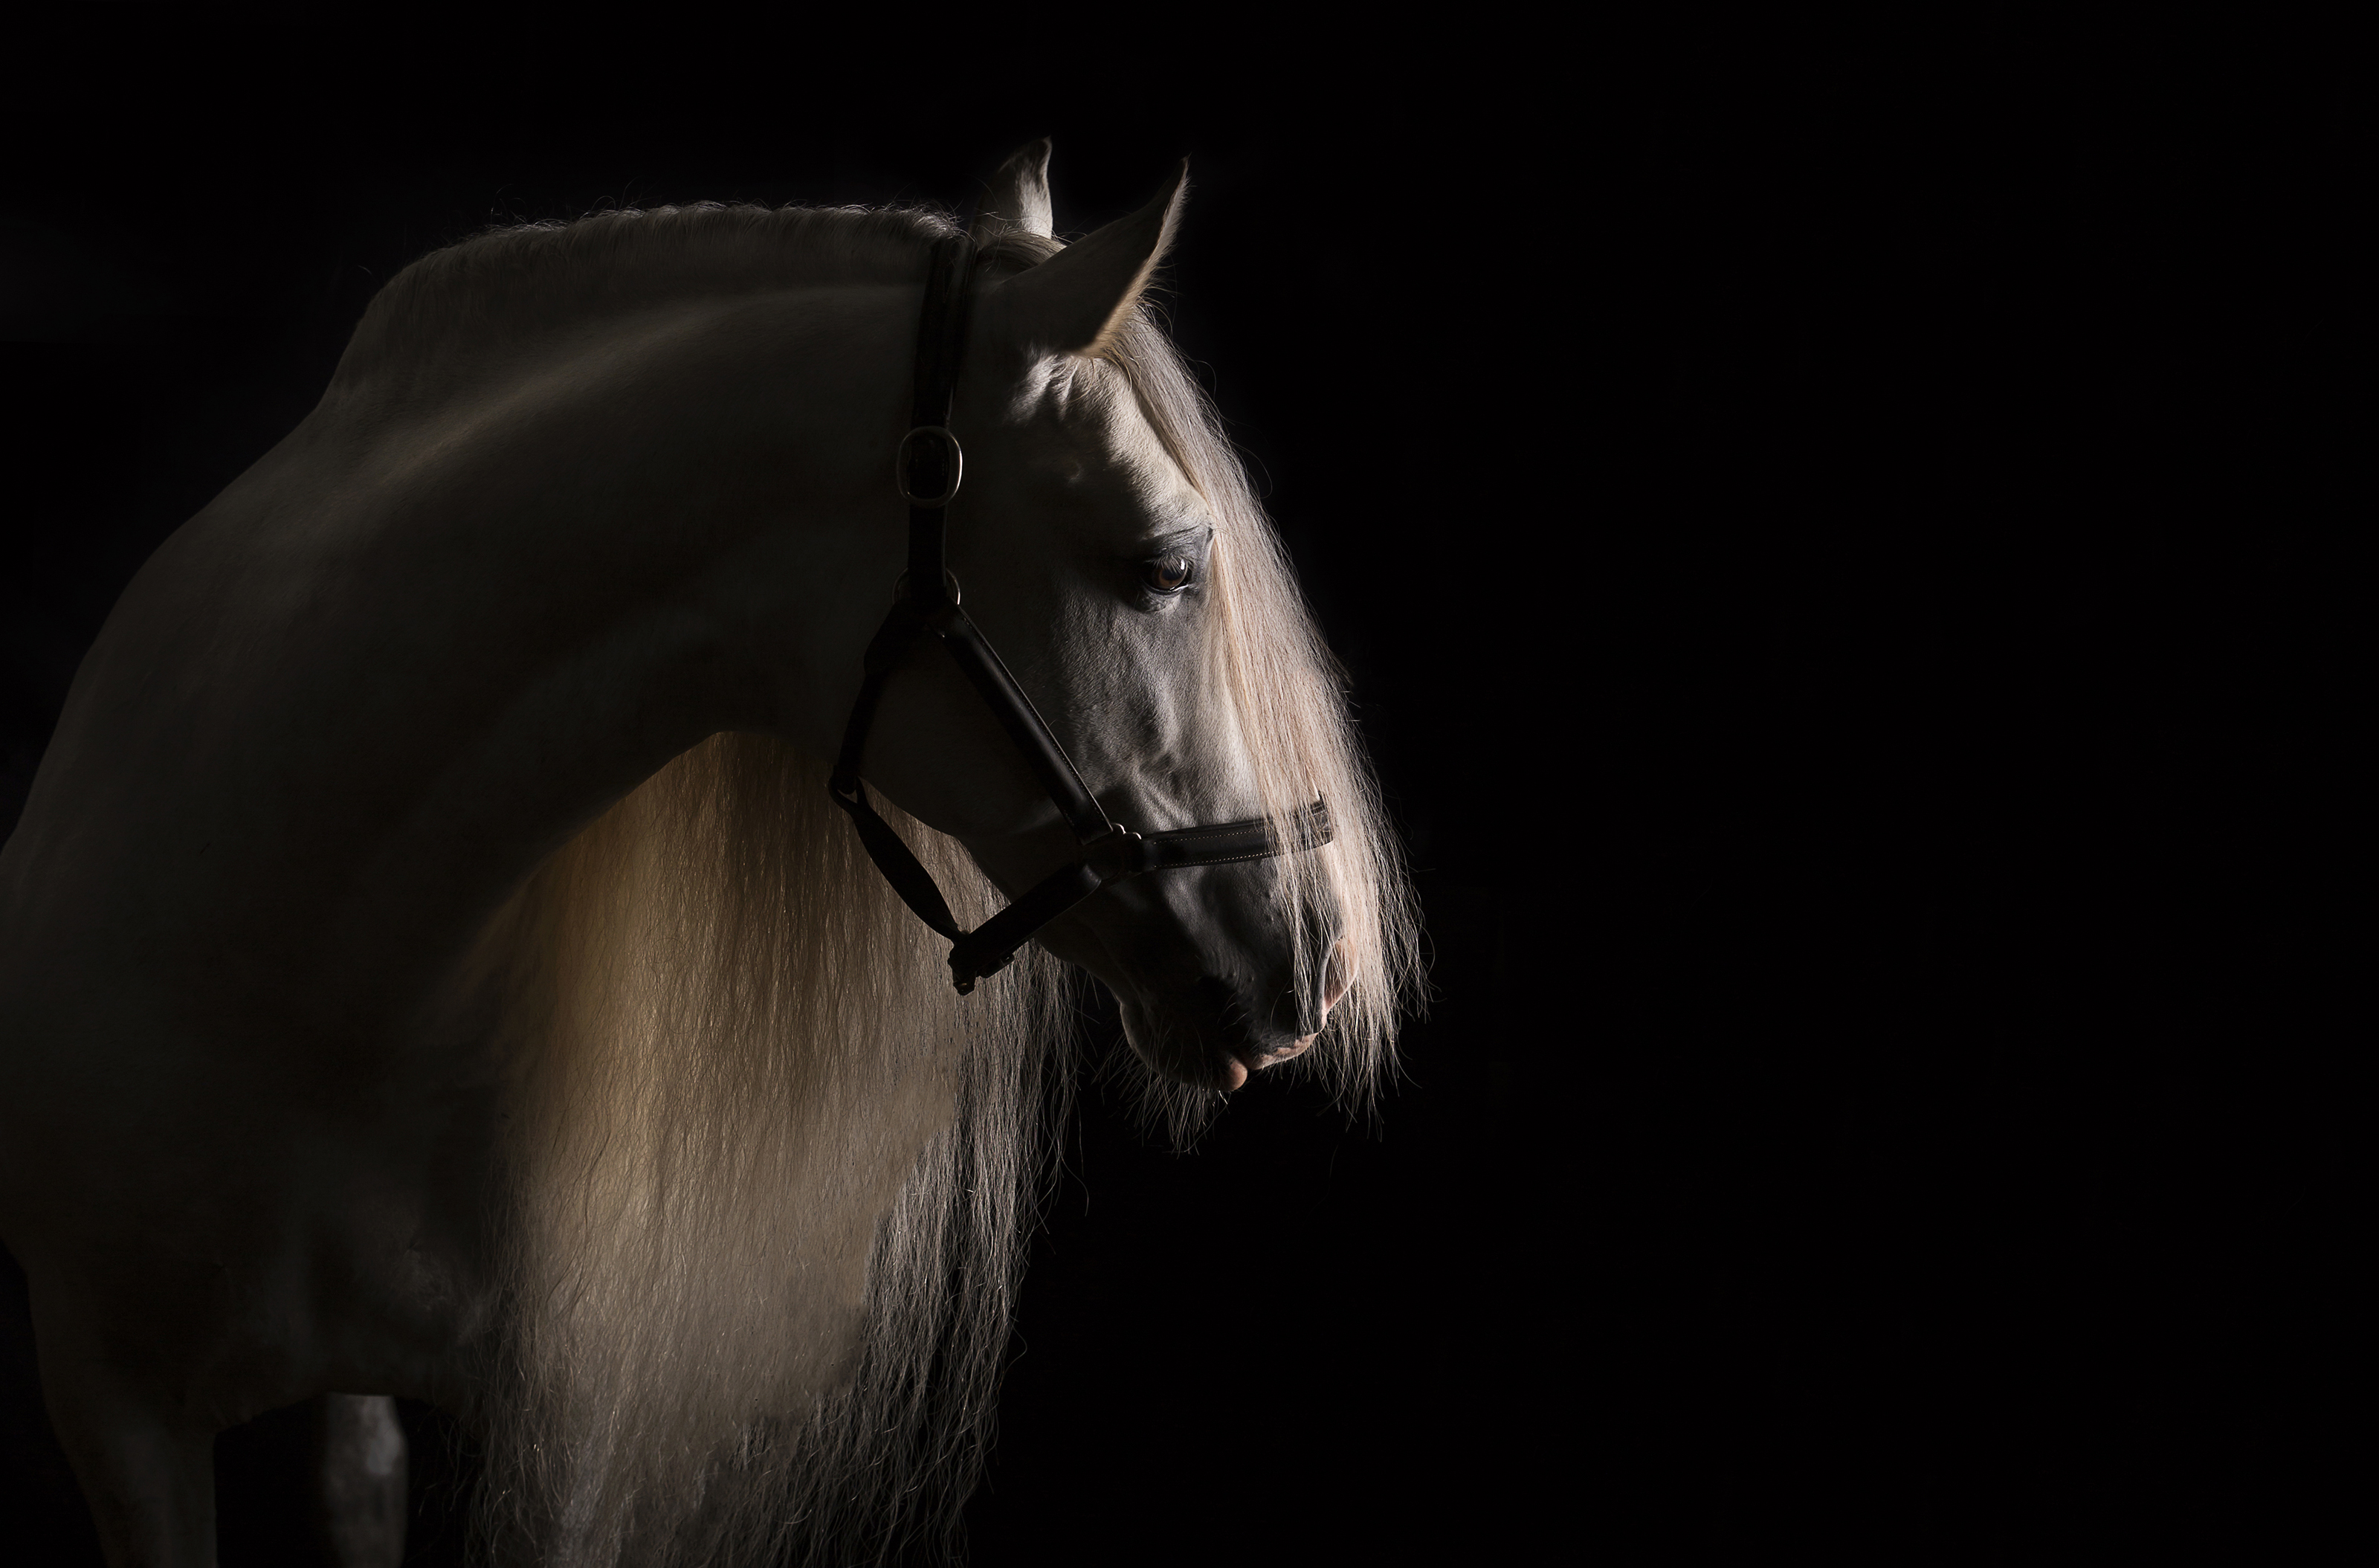 Fine Art Equine Photography Why Should I Invest Equus Photographyequus Photography